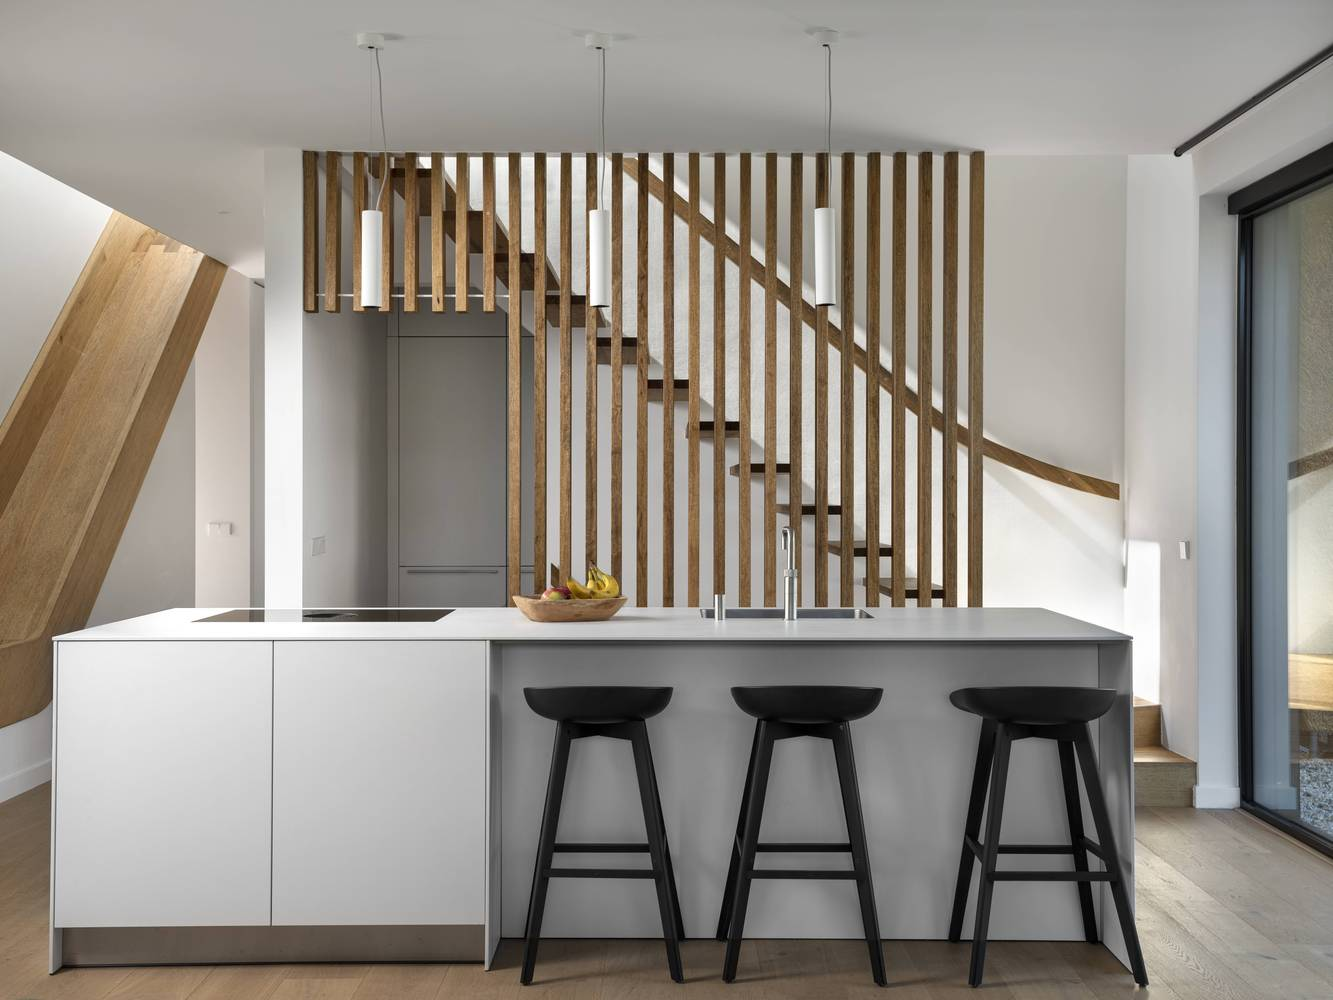 The kitchen is adjacent to the staircase area which includes a custom slide for the kids